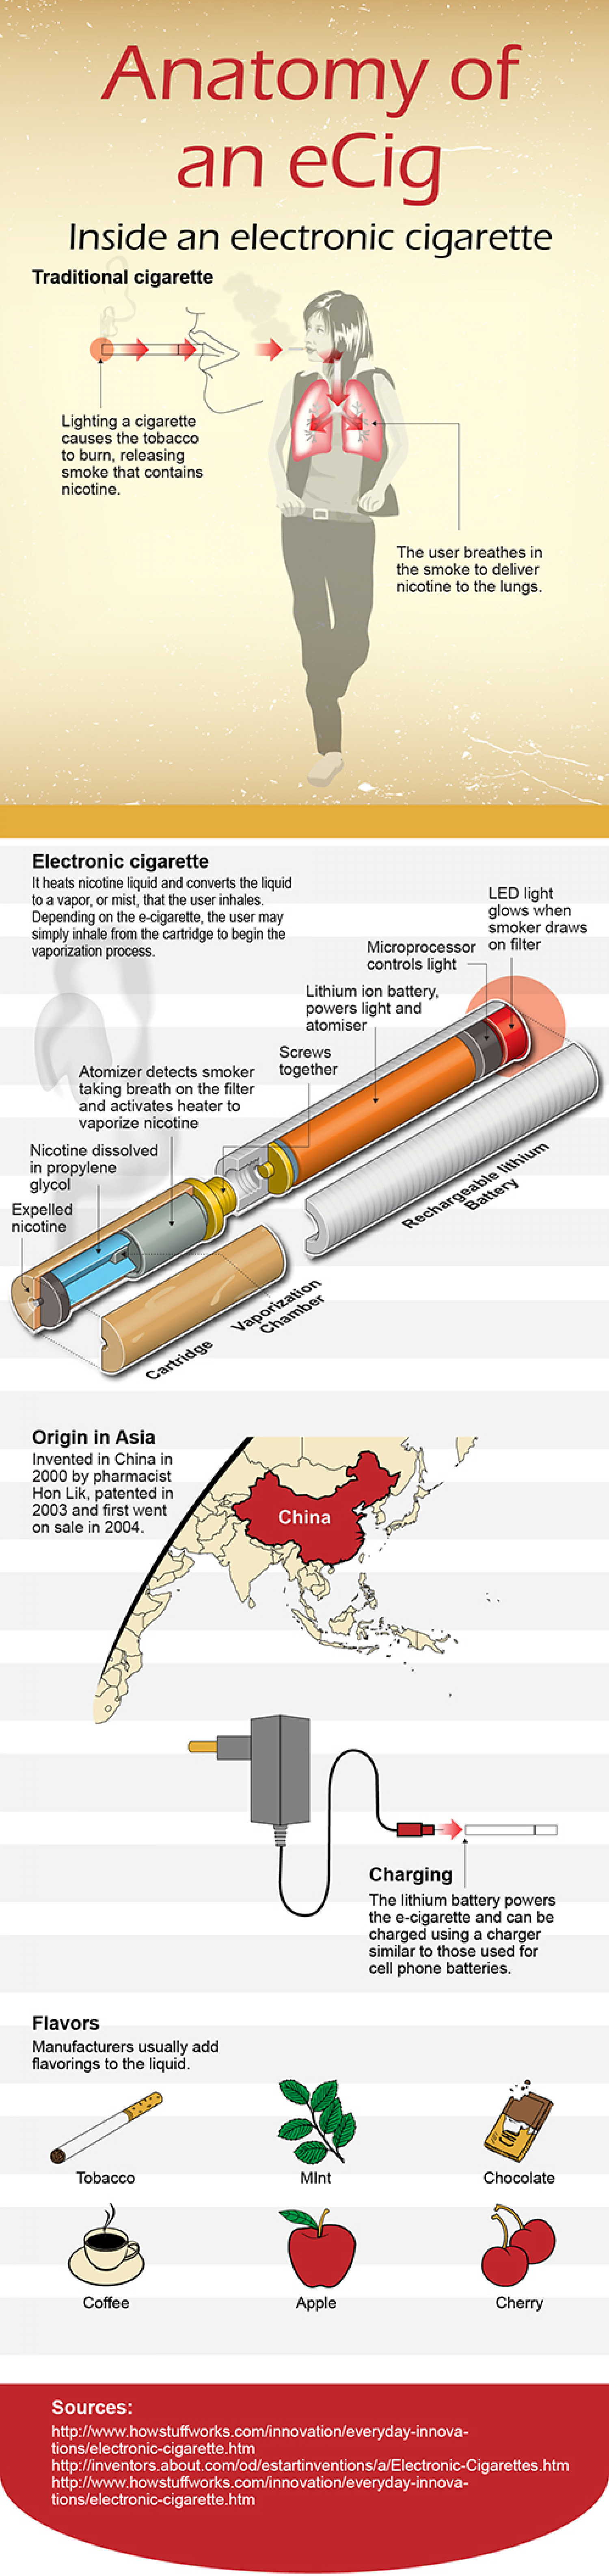 Anatomy of an eCig Infographic